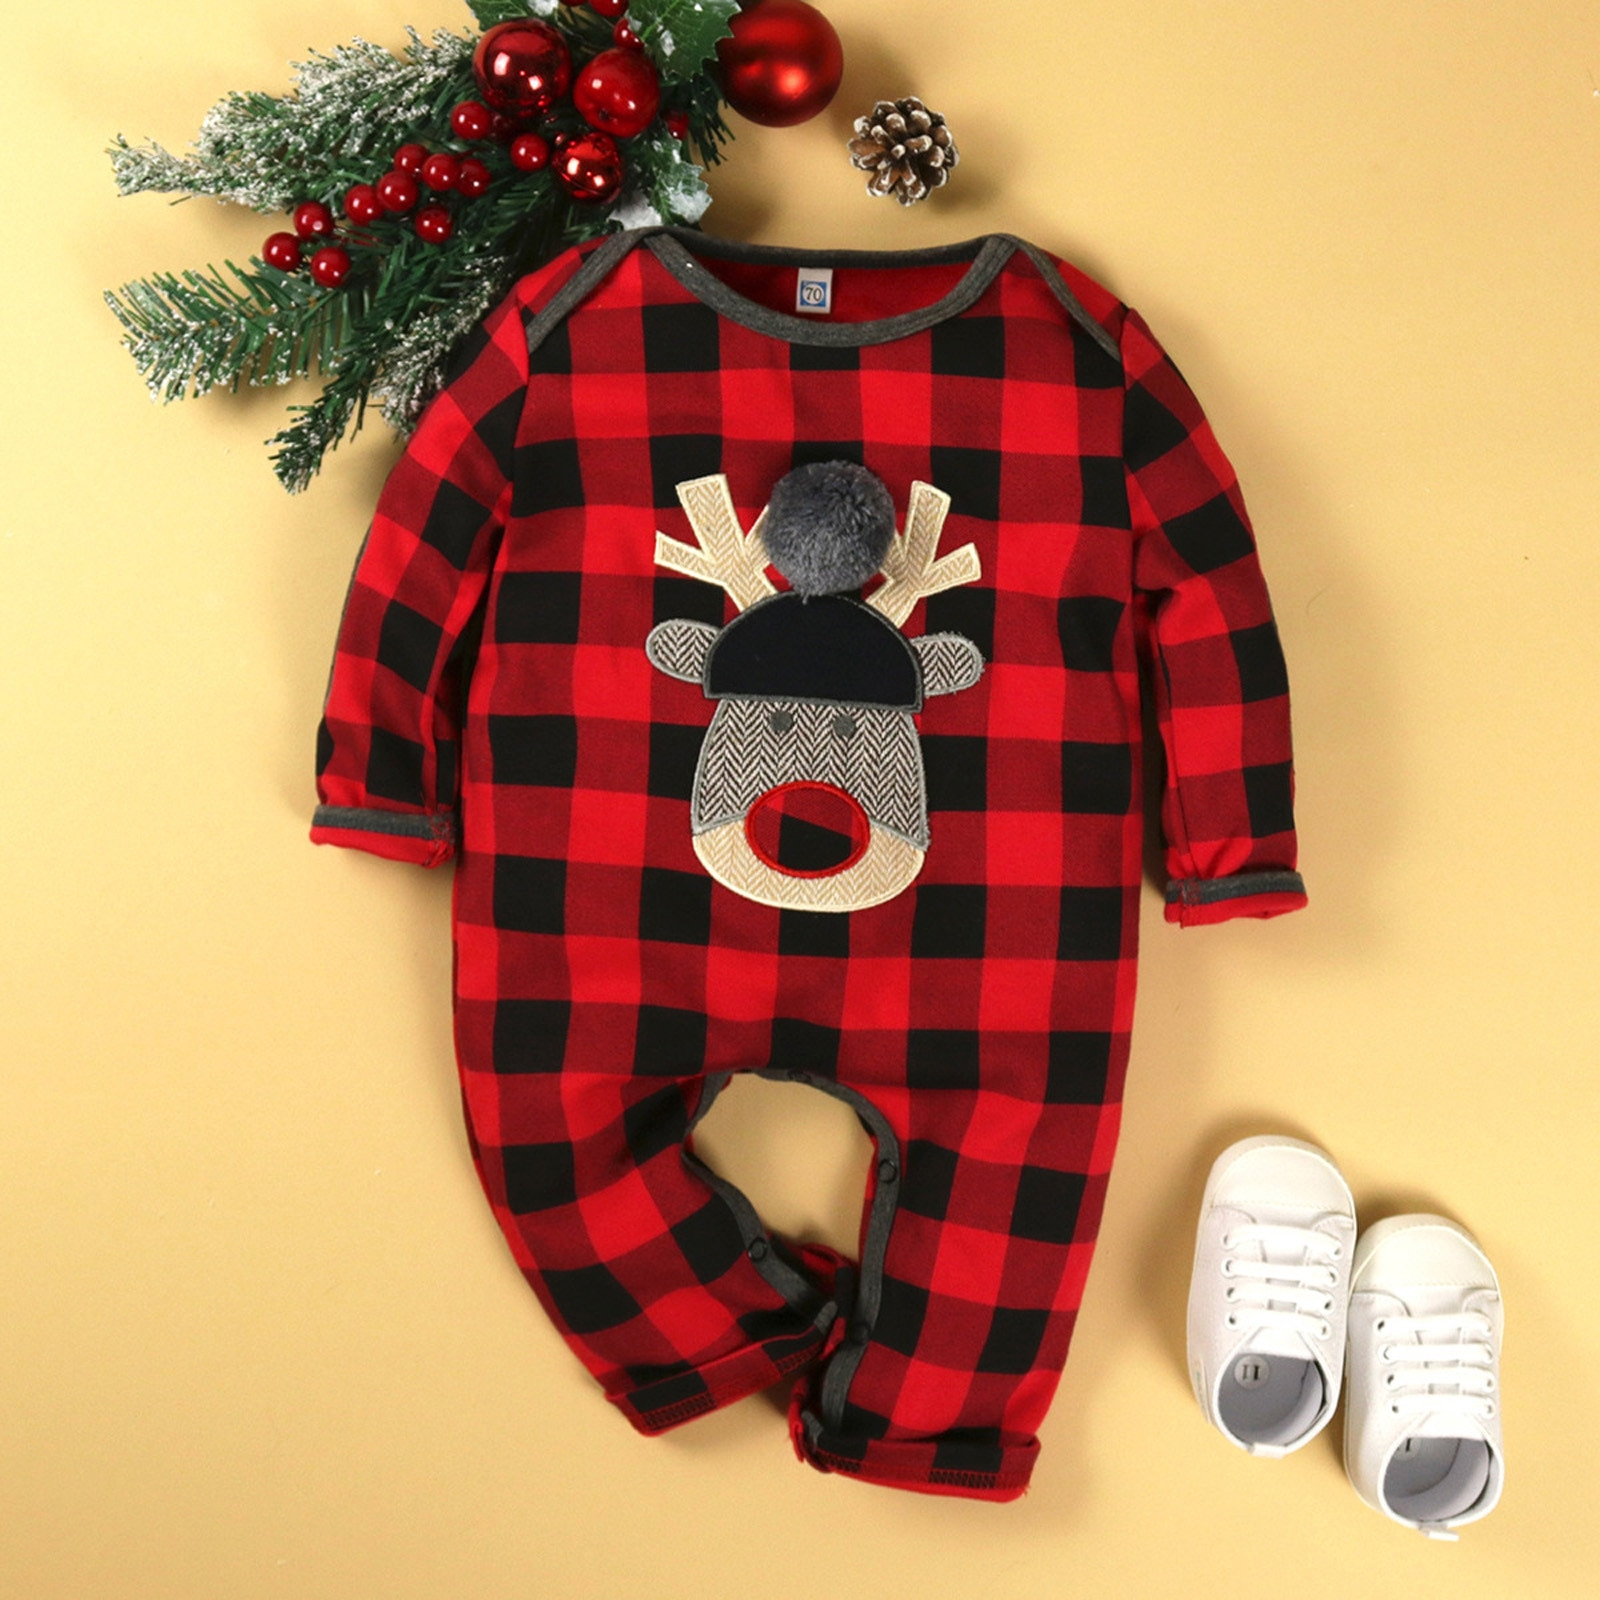 6M-24M Baby Winter Romper Christmas Long Sleeve Plaid Christmas Fawn Print Romper Hot Sell Clothes V